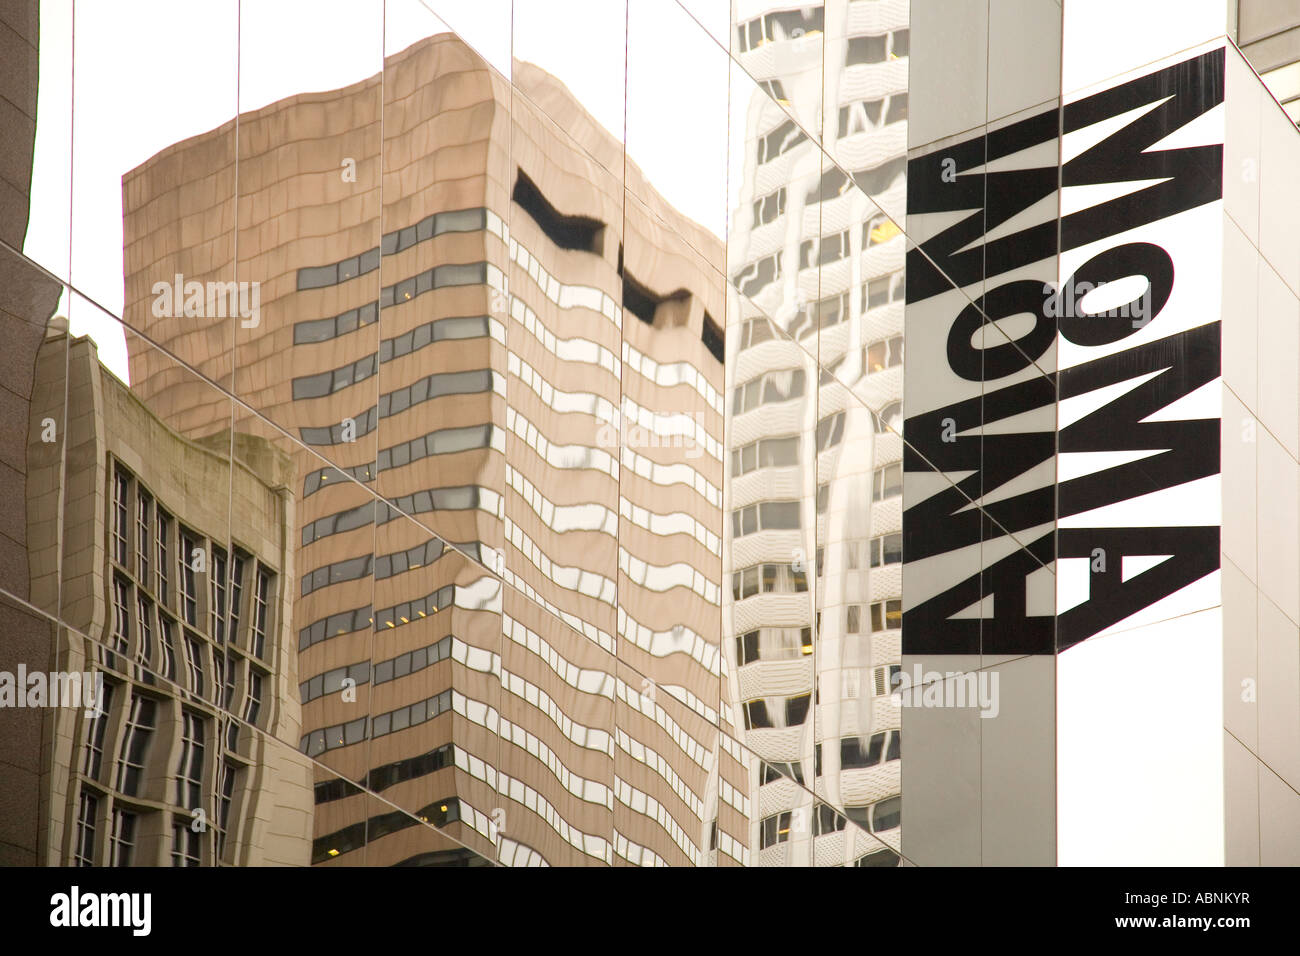 moma museum of modern art gallery sign in midtown manhattan new york stock photo 12936442 alamy. Black Bedroom Furniture Sets. Home Design Ideas